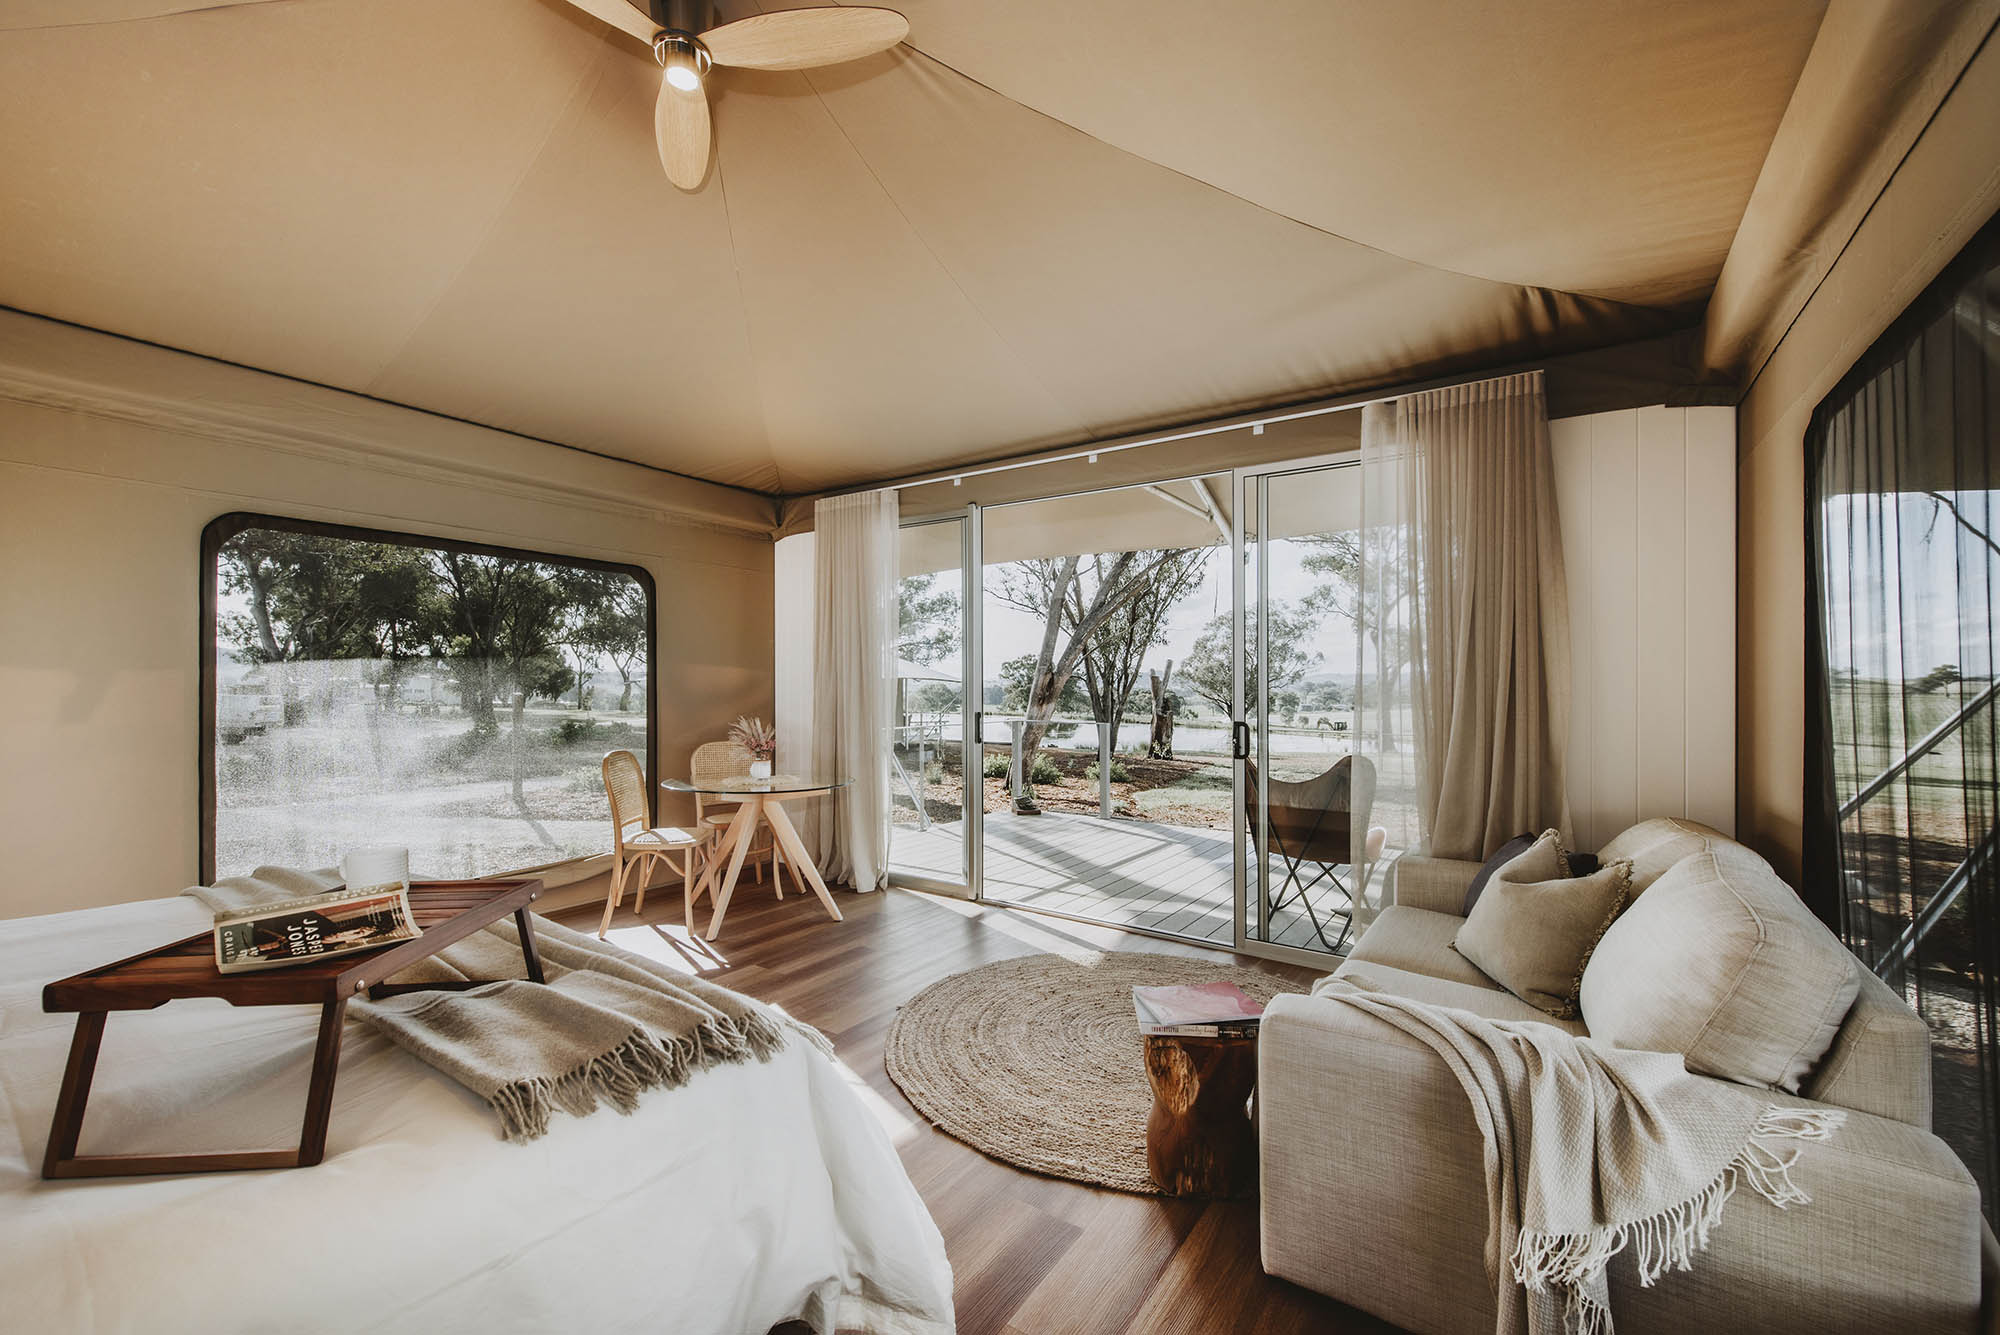 evamor valley eco glamping experience mudgee nsw